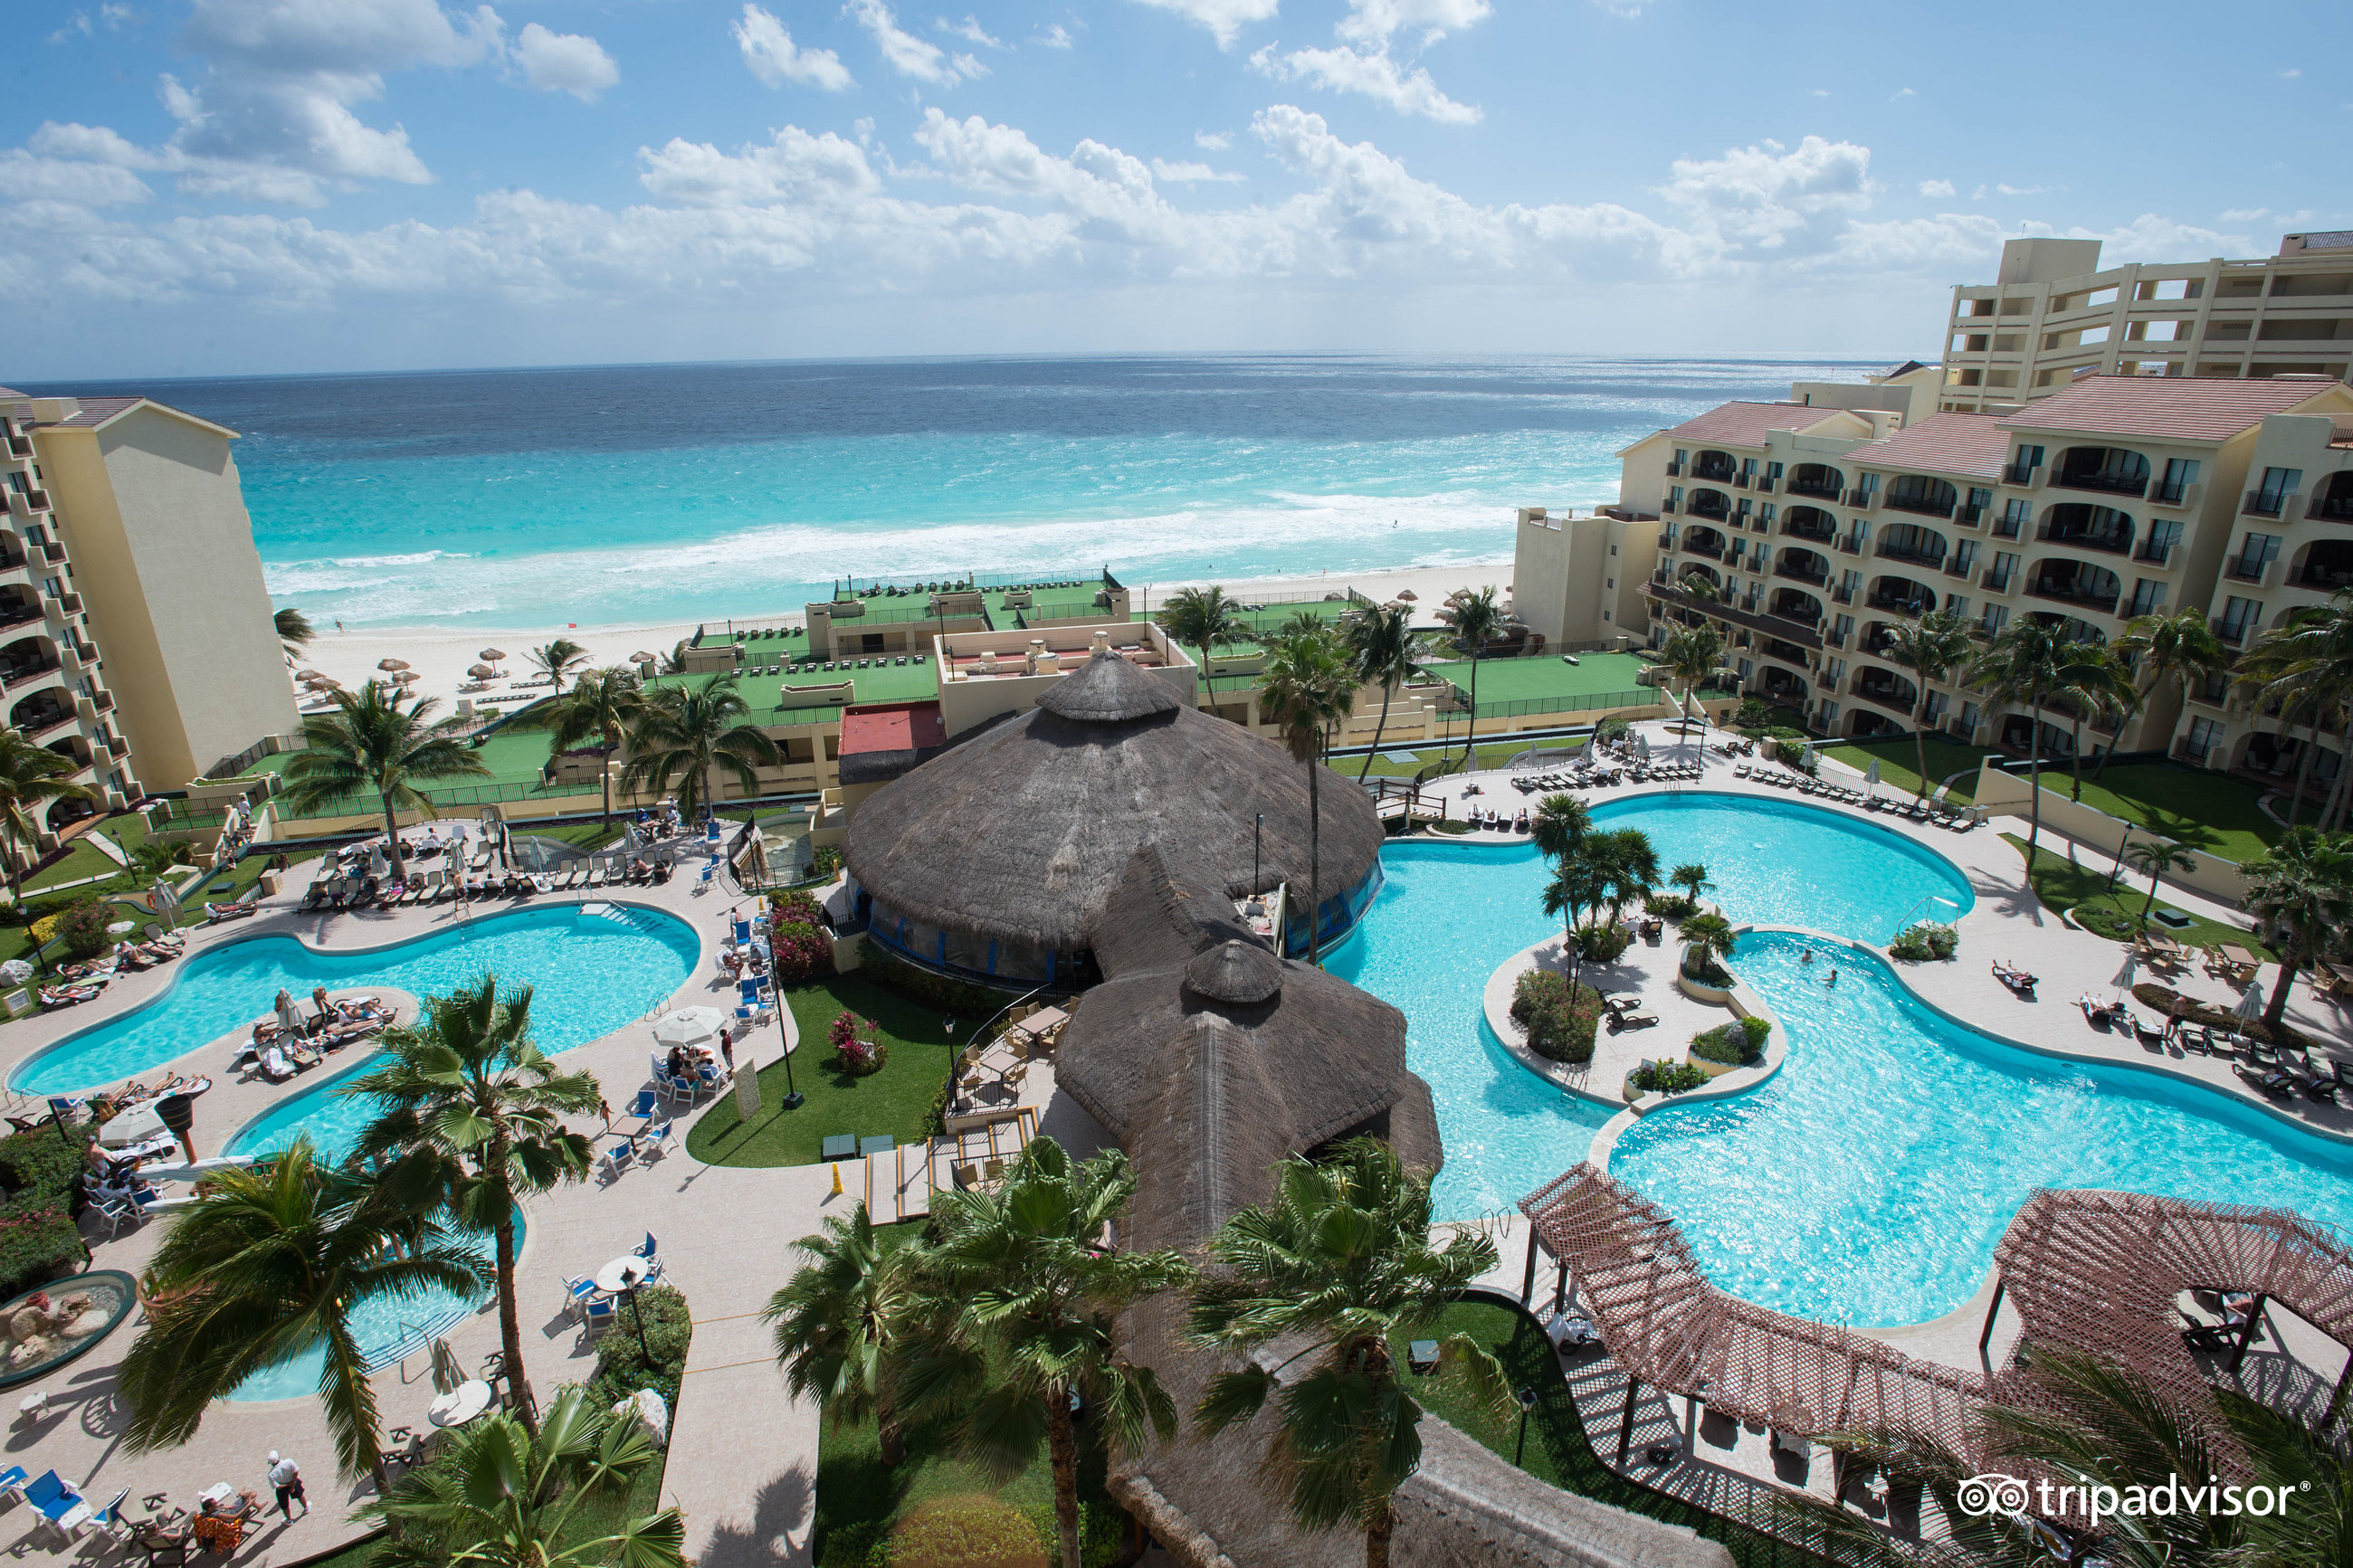 Cancun an all suites resort 2017 review family vacation critic - Cancun An All Suites Resort 2017 Review Family Vacation Critic 26